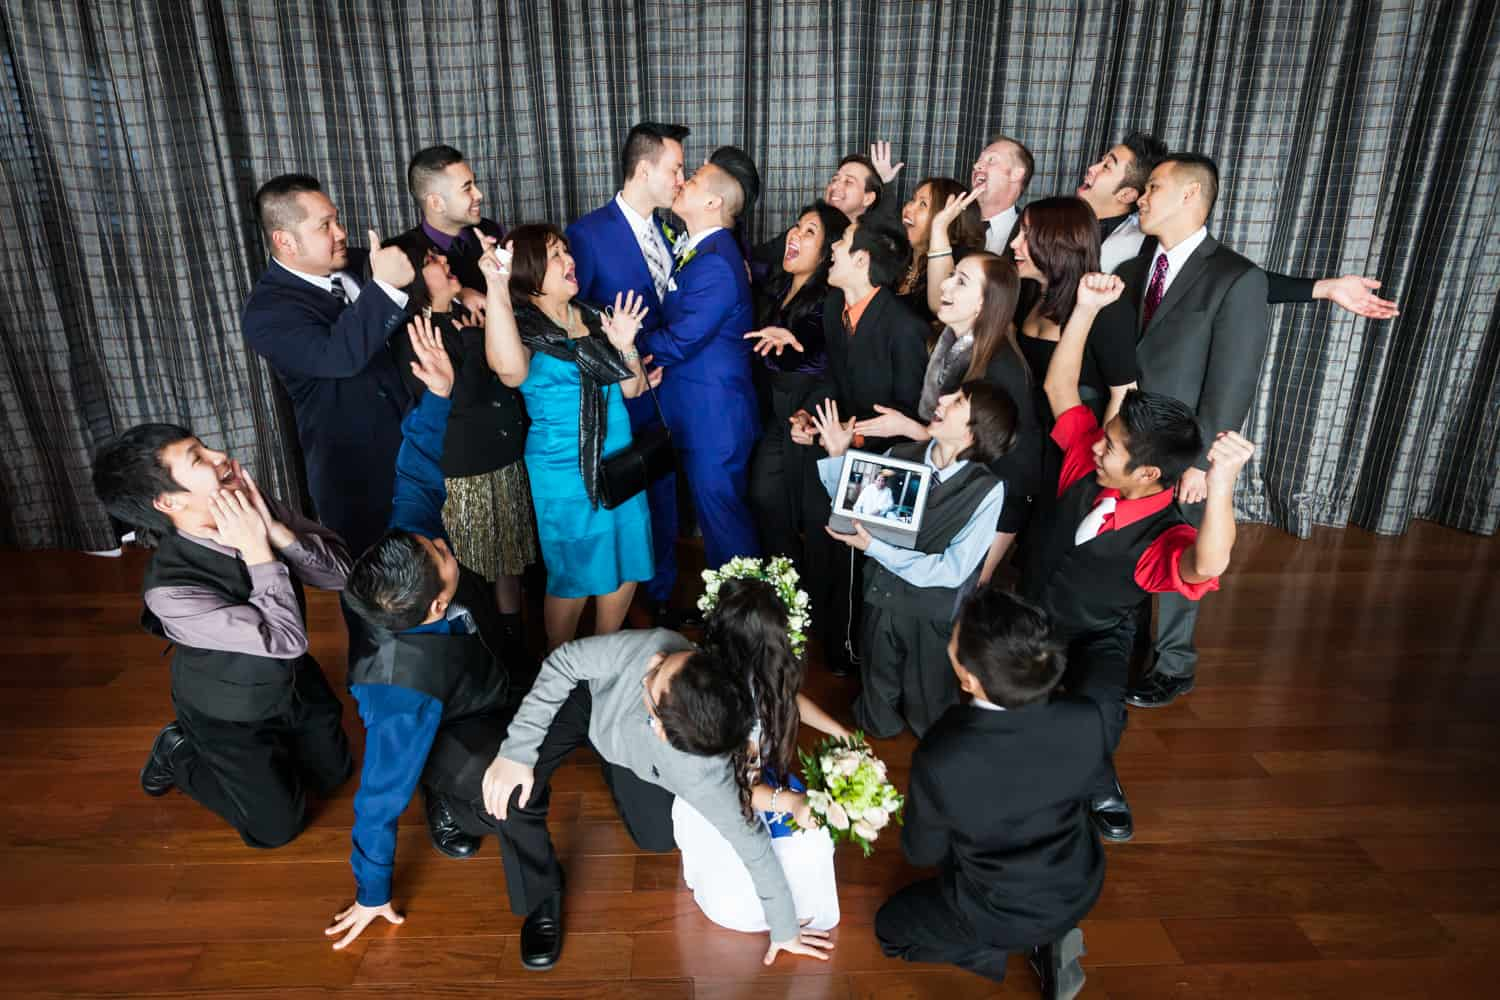 Family cheering around two grooms kissing